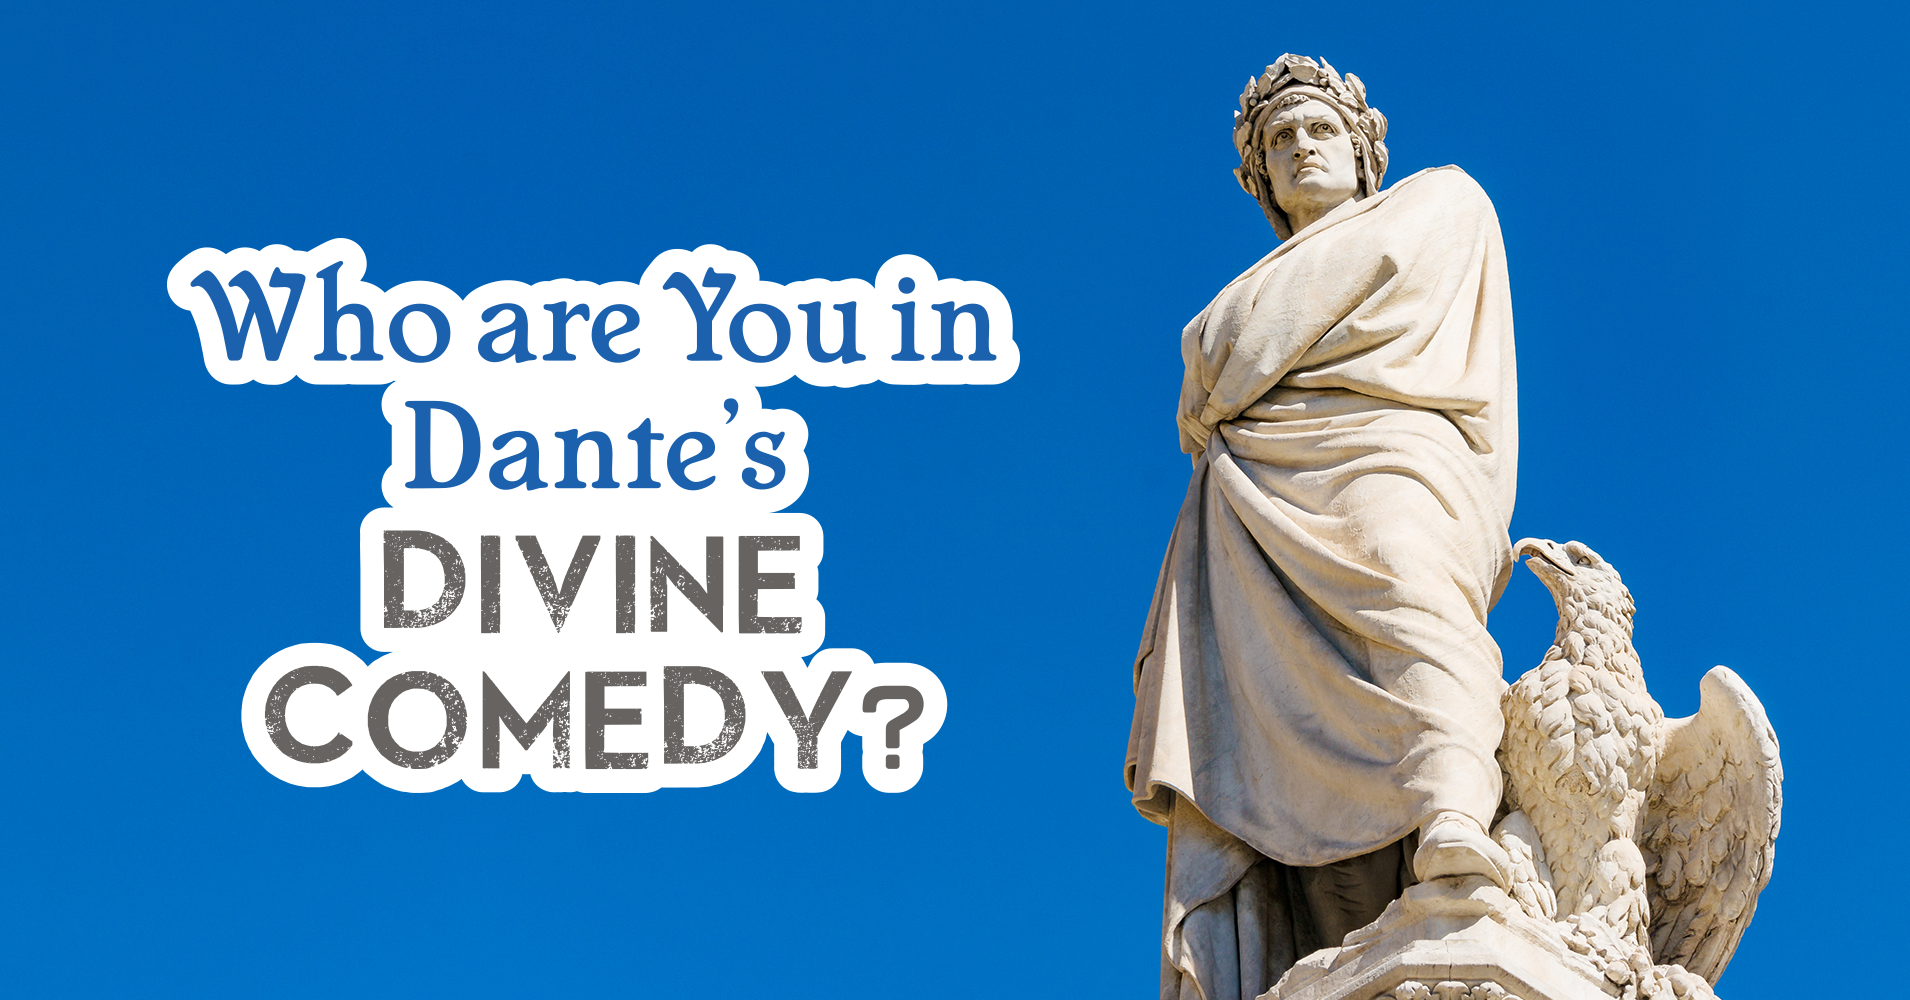 Divine comedy questions and answers